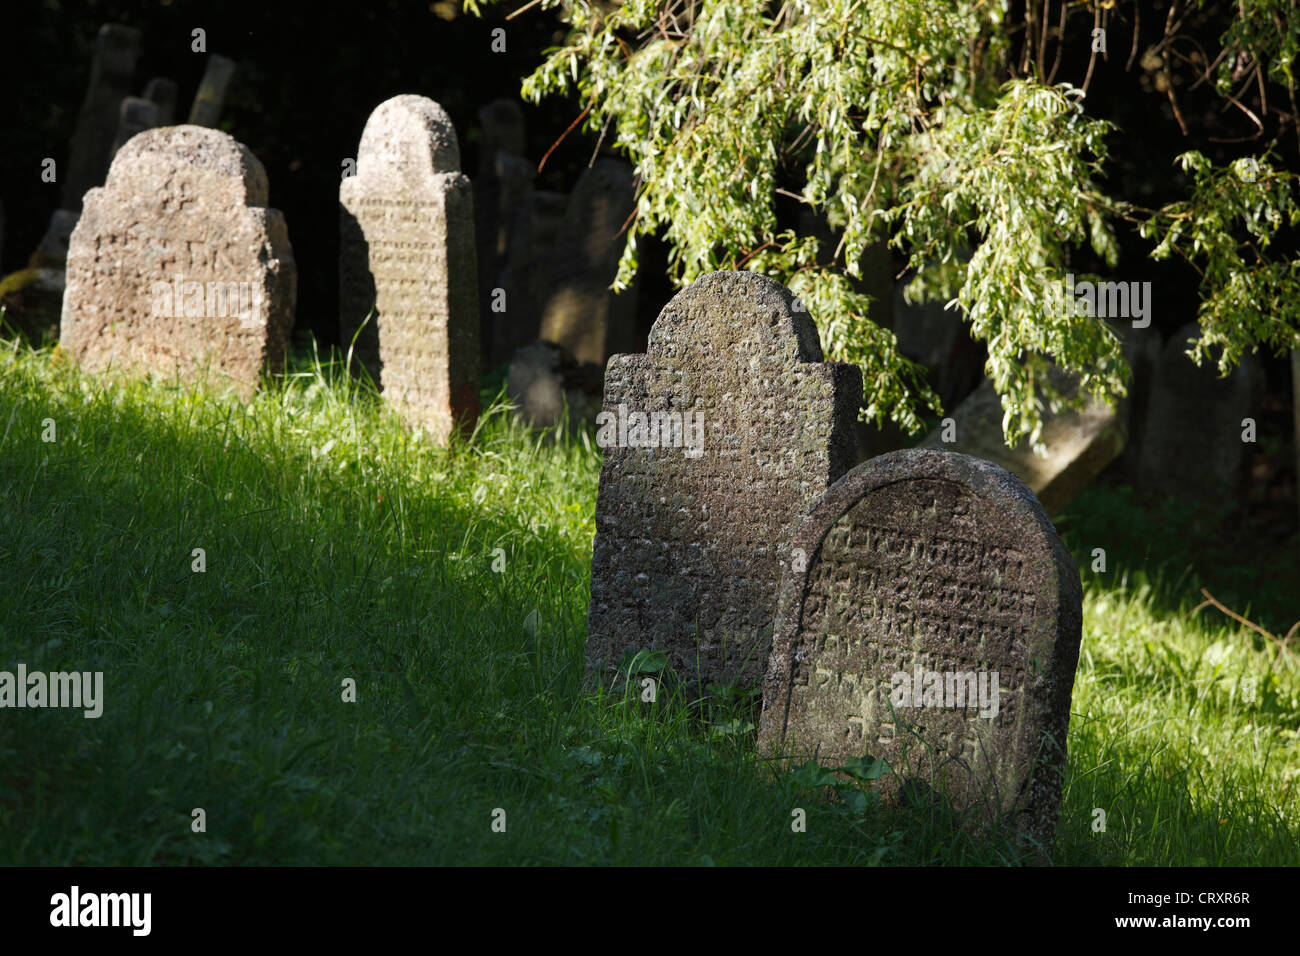 Germany, Bavaria, Flossenbuerg, View of jewish grave yard - Stock Image